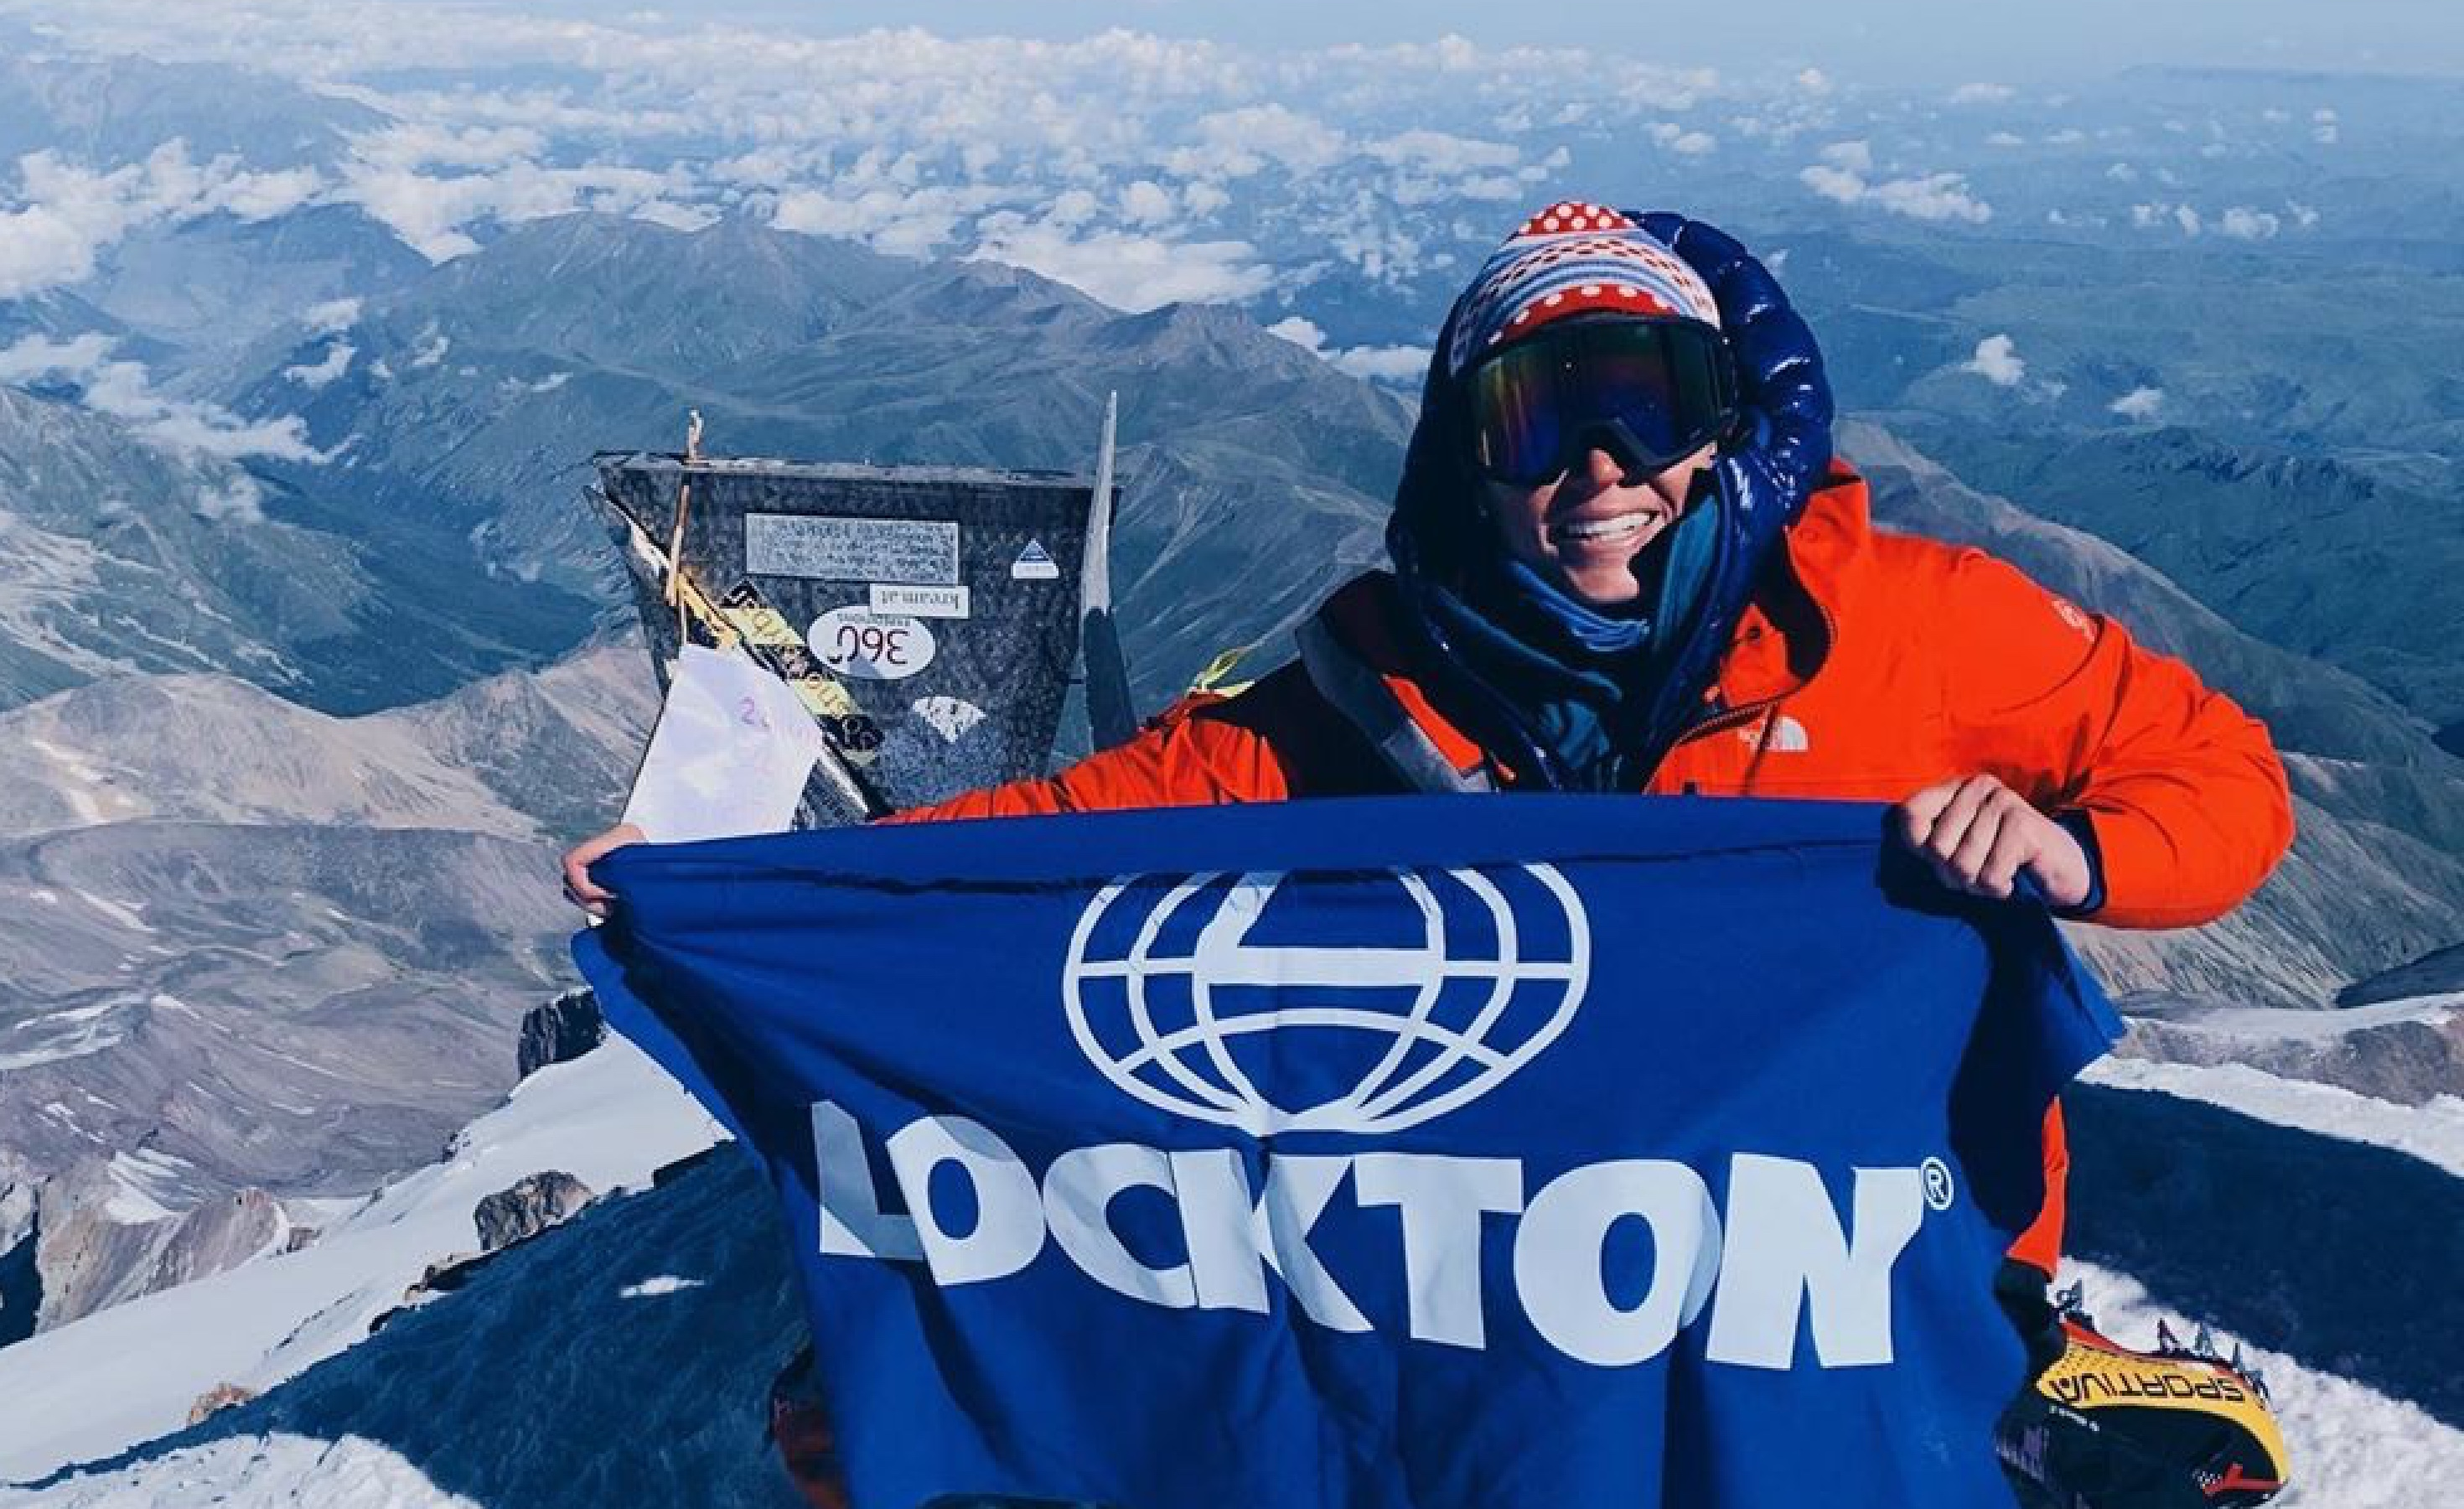 Lockton employee on the top of a mountain holding a Lockton flag